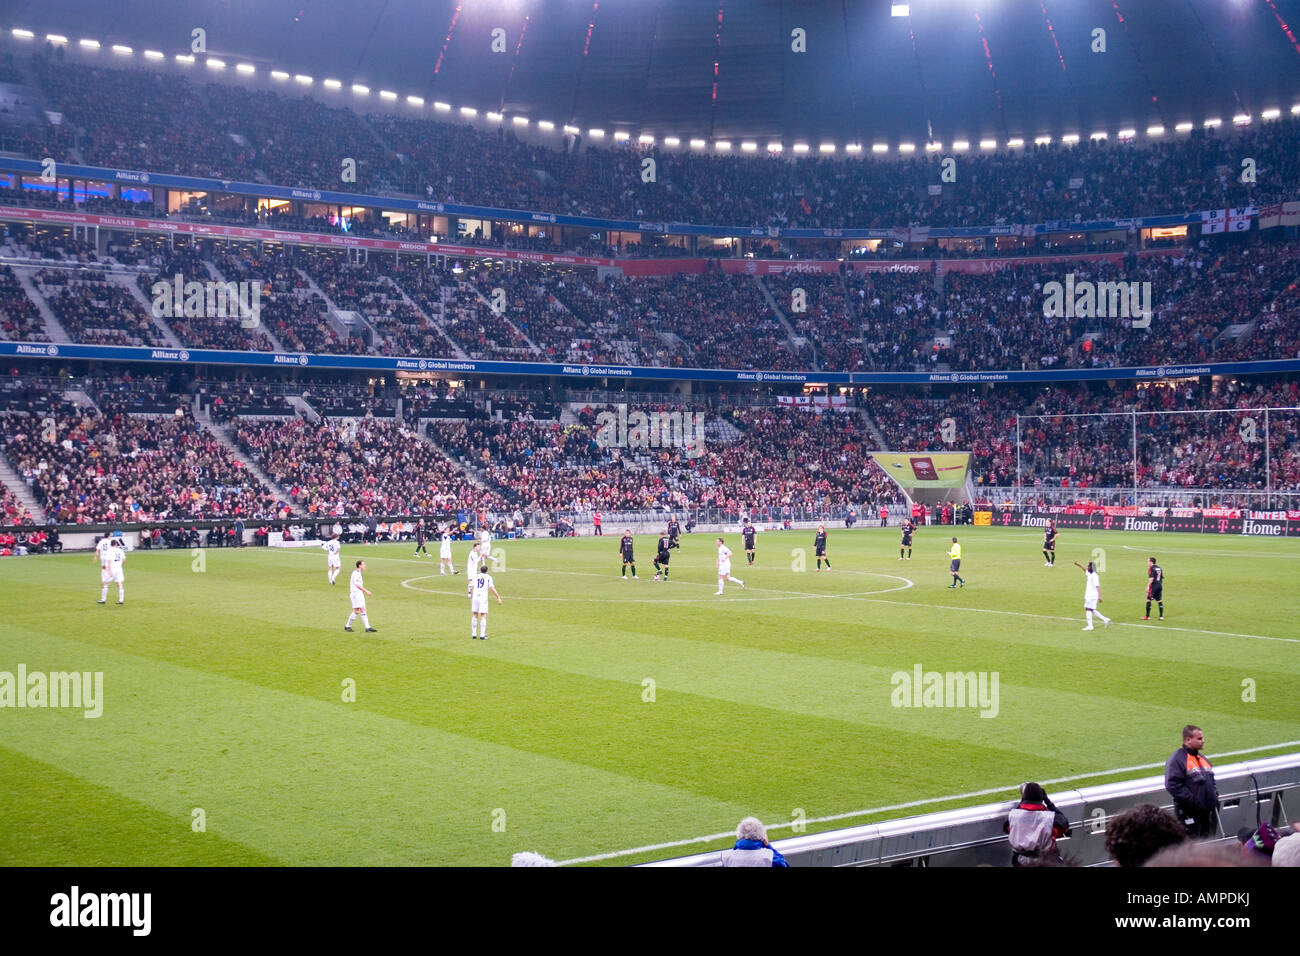 EU DE Germany Bavaria Munich The football stadion Allianz Arena at night game for the UEFA Pokal at 08 11 2007 FC - Stock Image